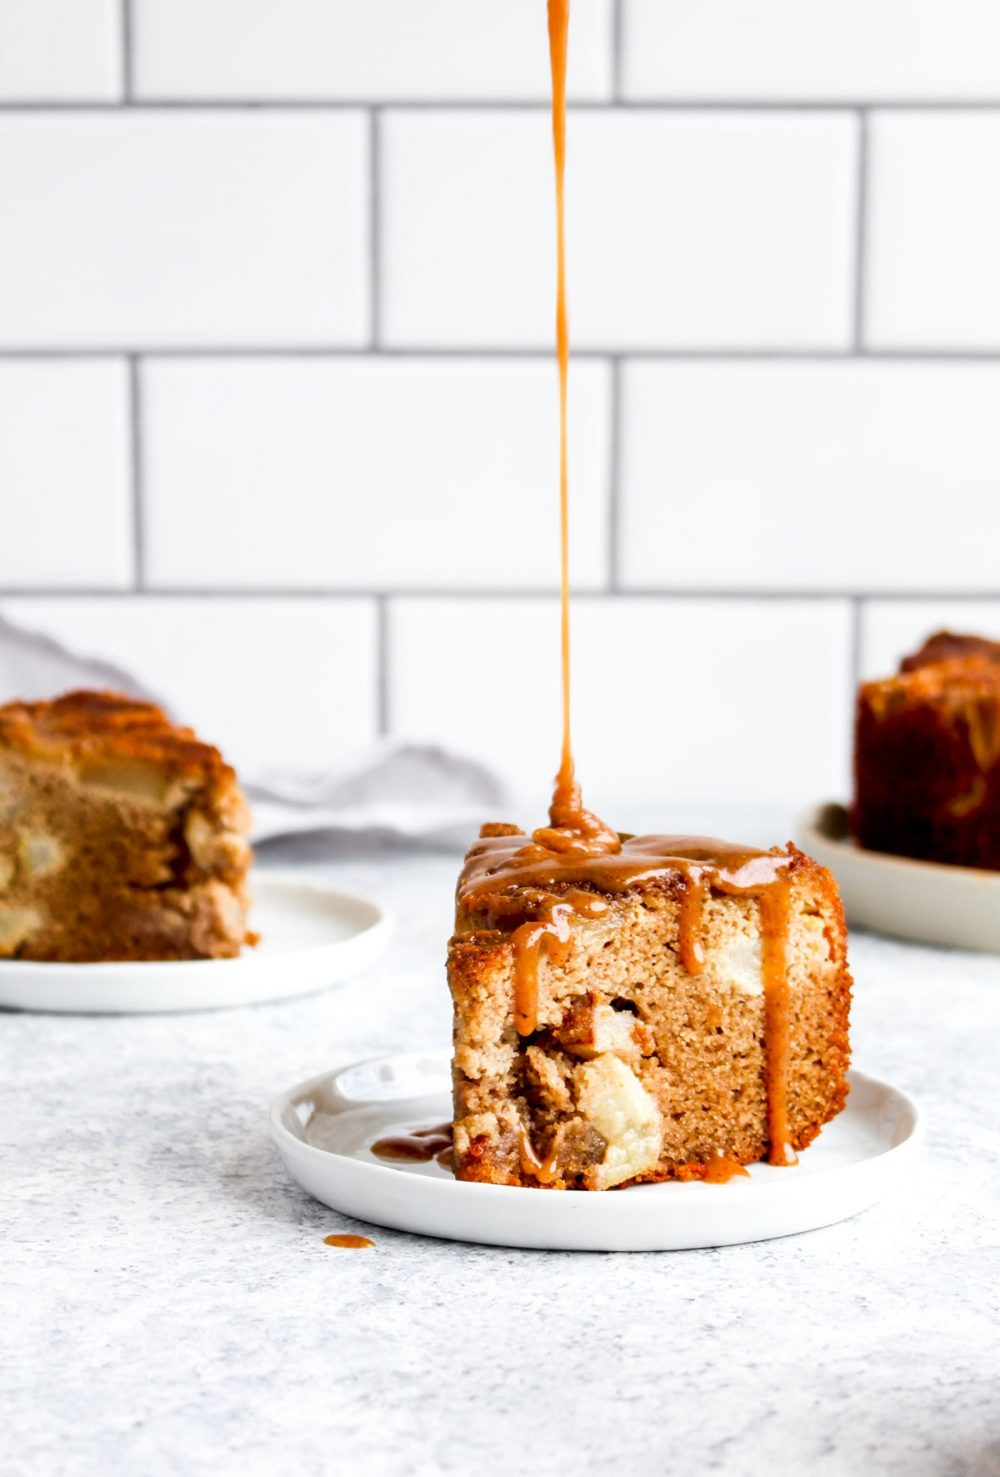 Caramel being drizzled on paleo pear cake.